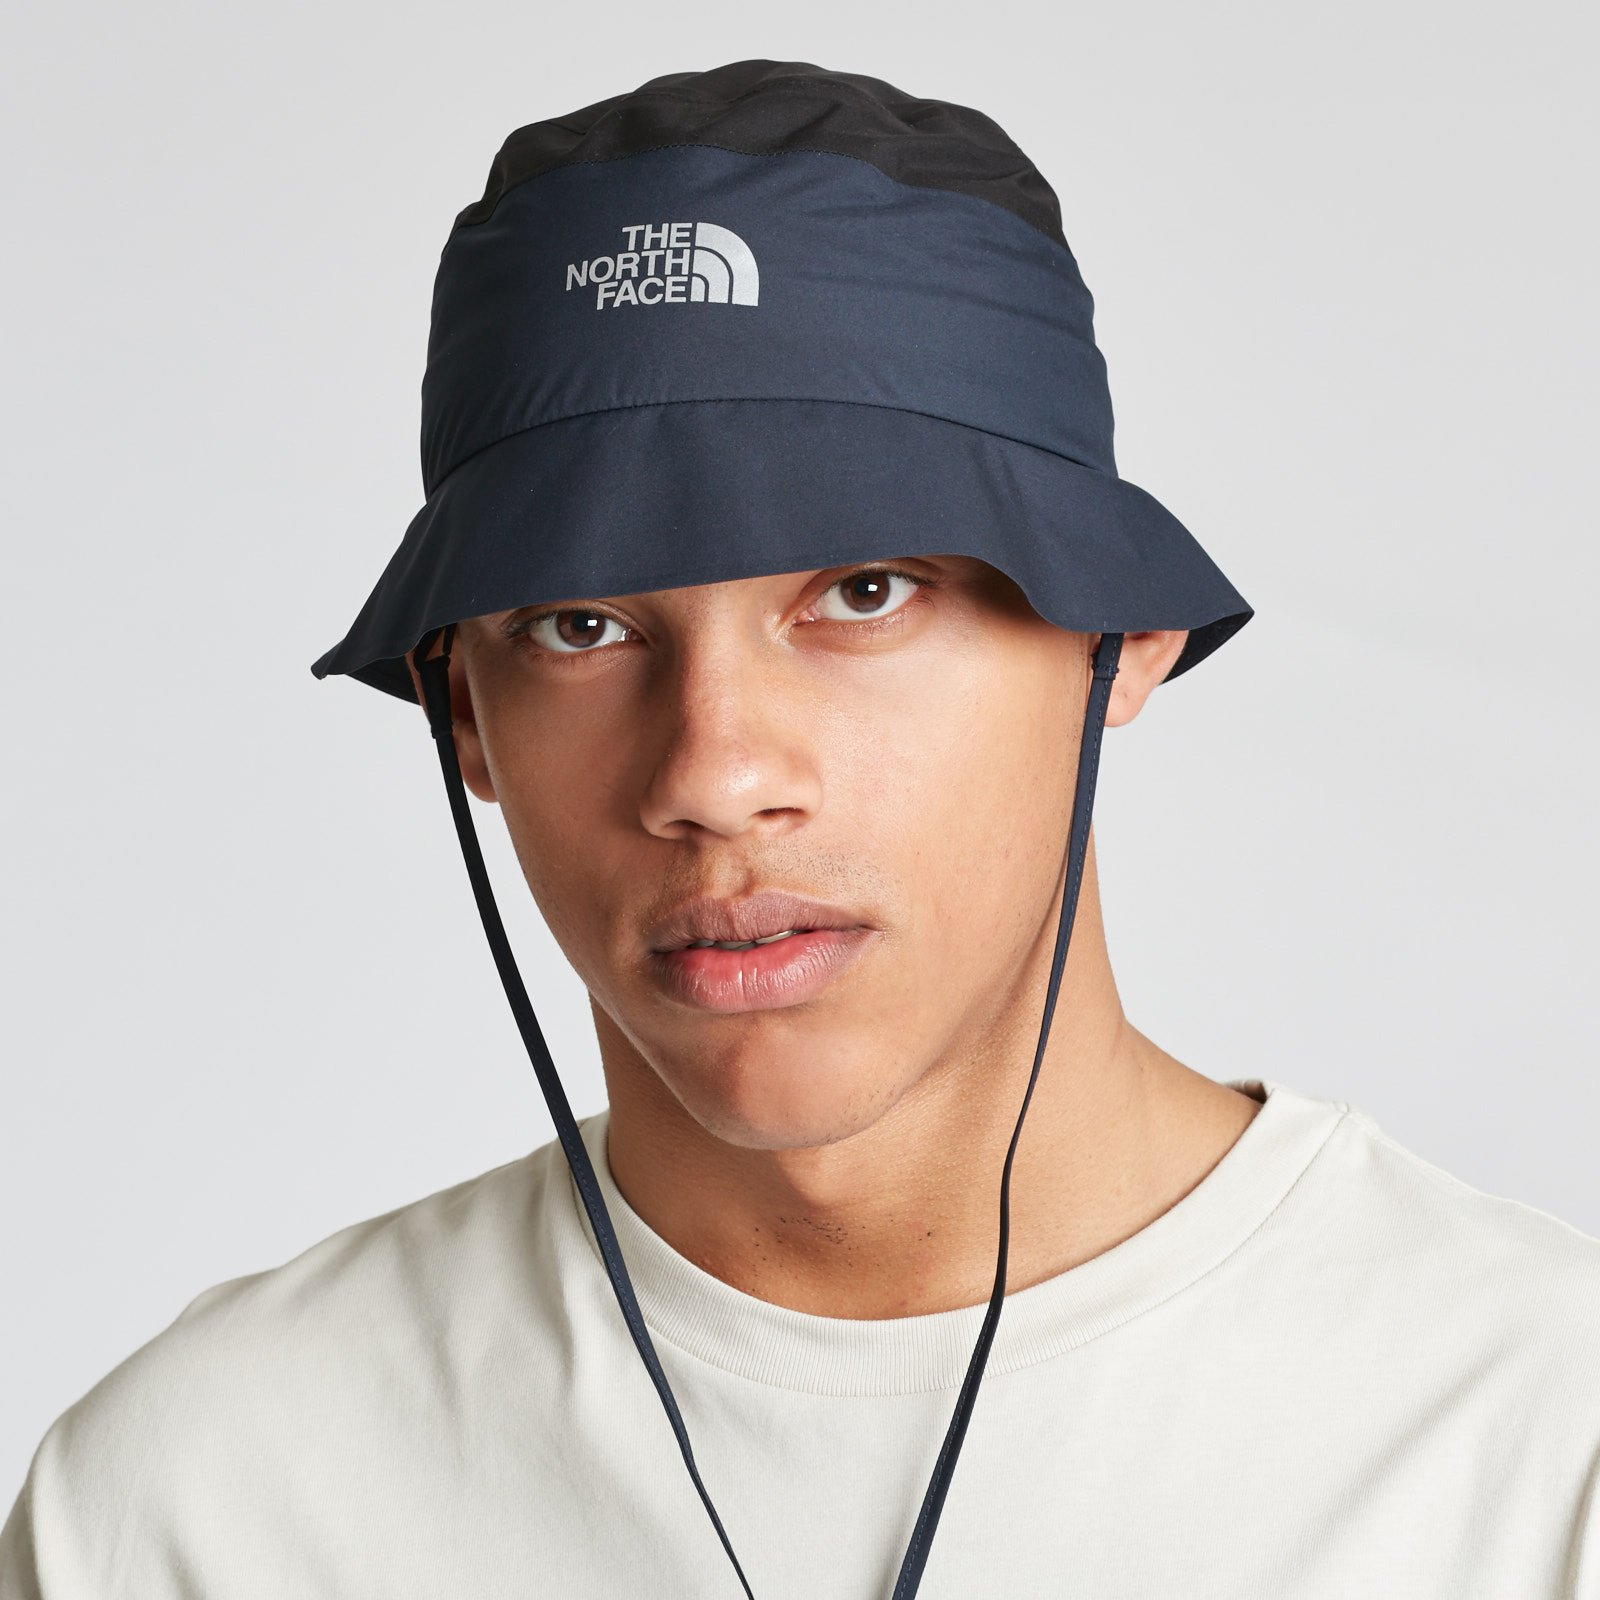 The North Face GORE-TEX Bucket Hat - T0cf9lsxk - Sneakersnstuff ... f02b98ab5a4